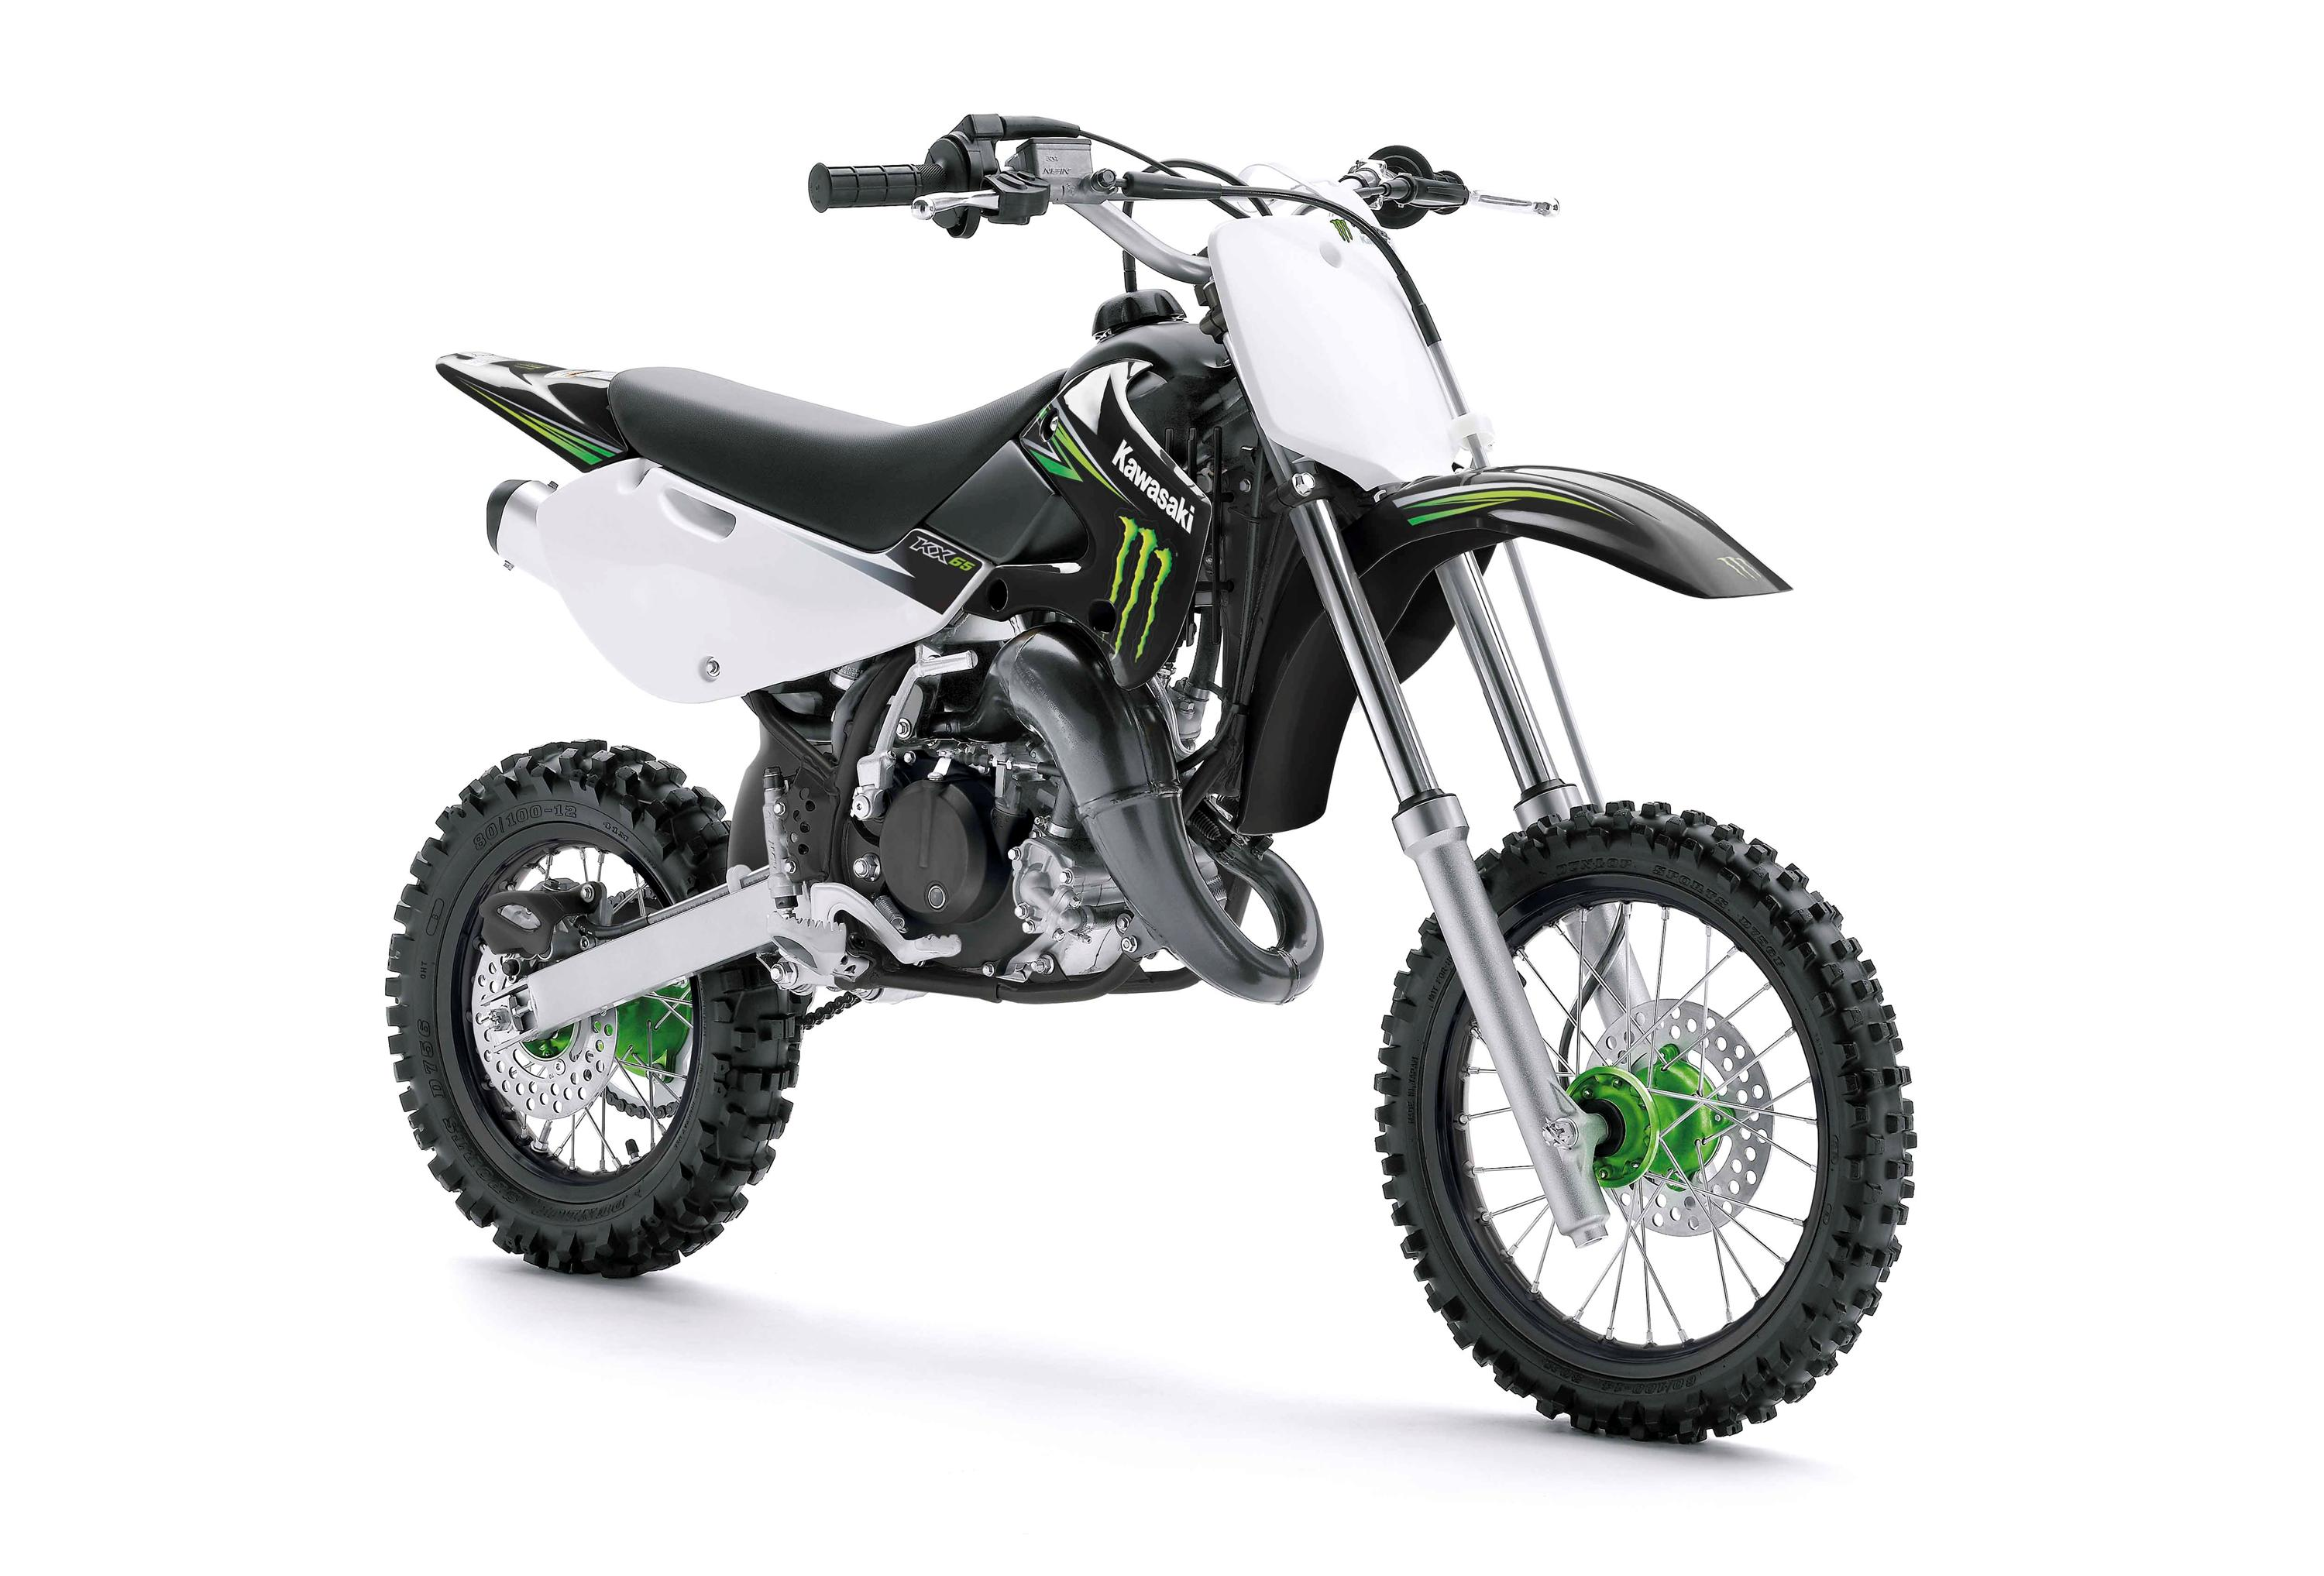 2009 Kawasaki KX65 | Top Speed